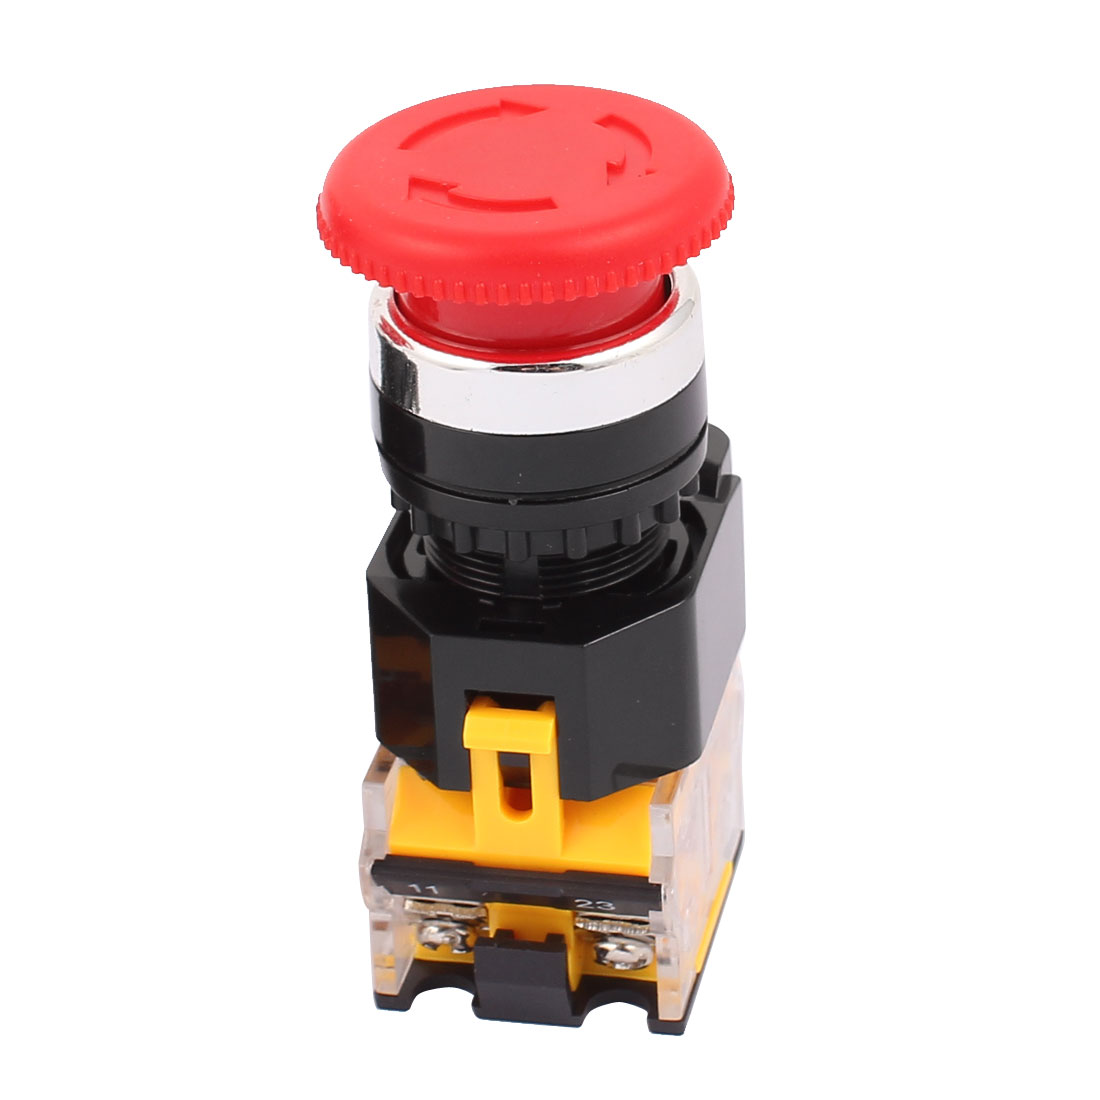 400V 10A Momentary NO + NC Mushroom Push Button Switch Emergency Stop